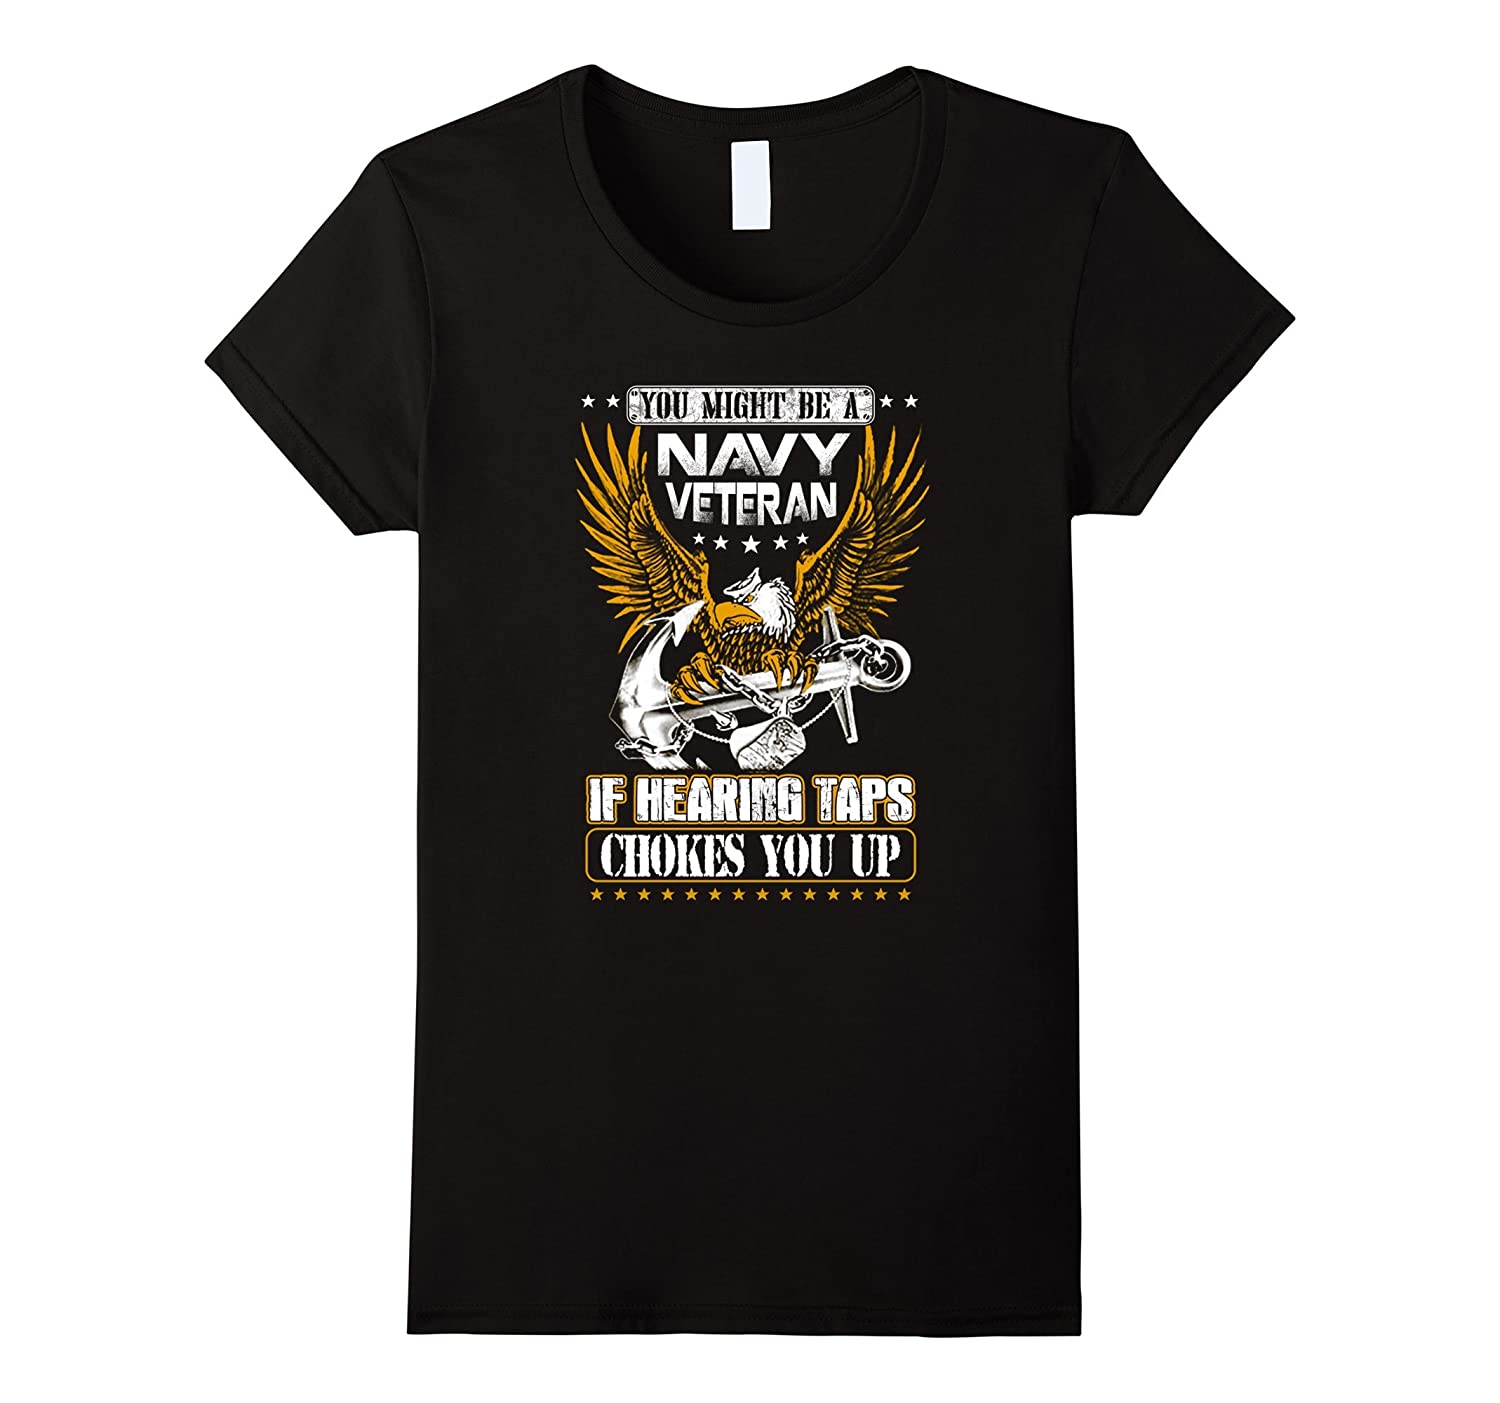 A NAVY VETERAN T-SHIRT